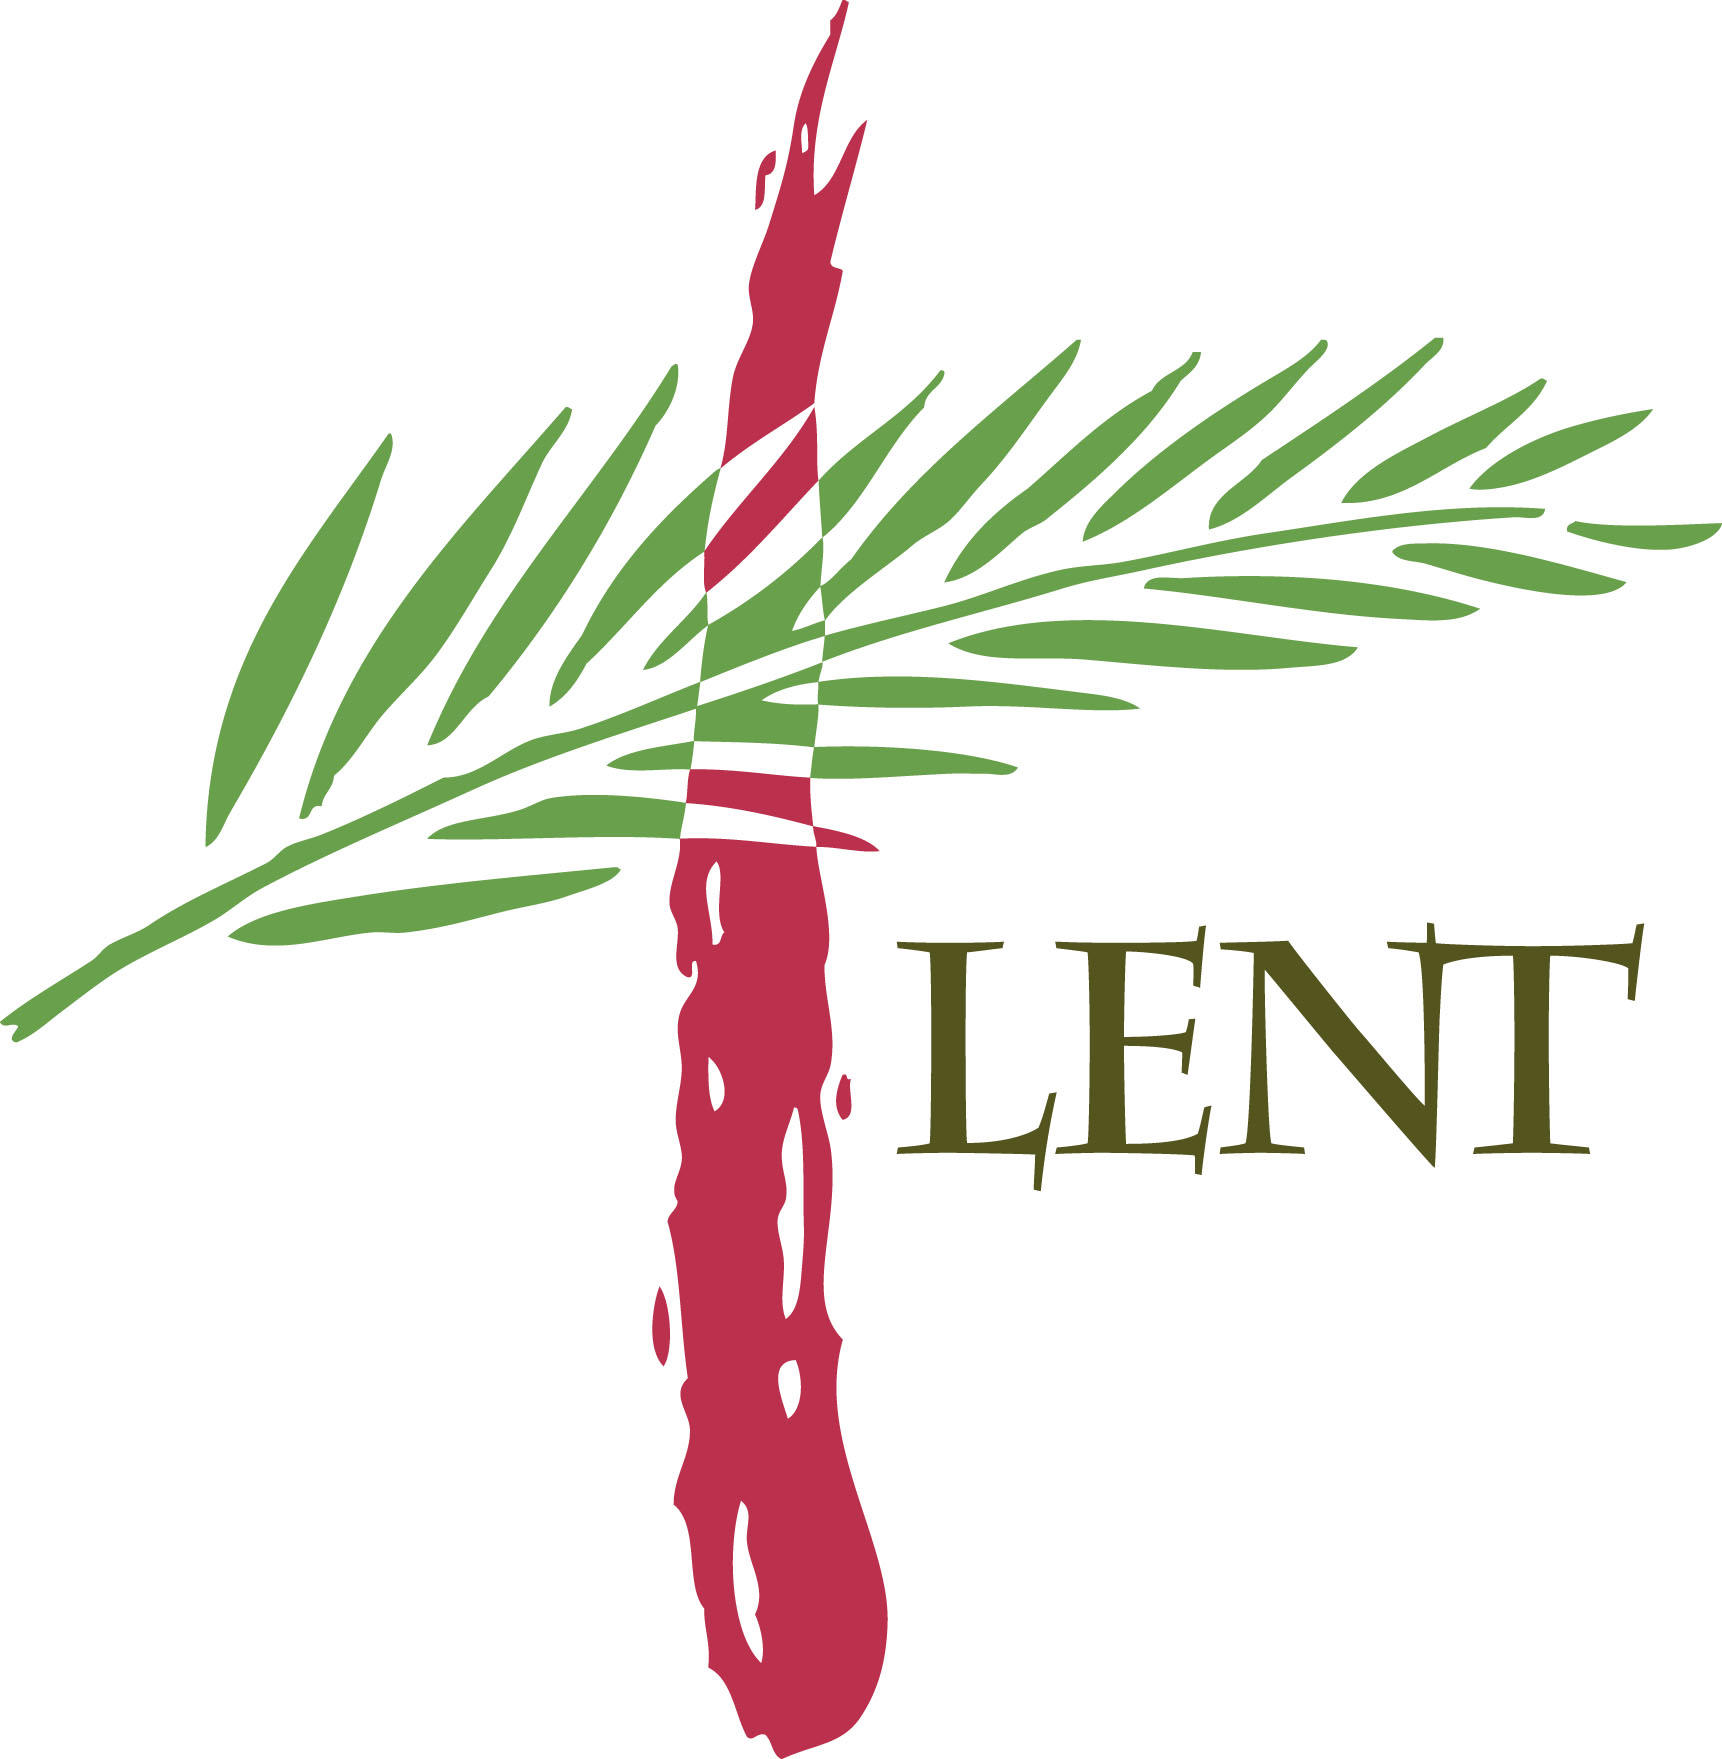 Lent PNG HD